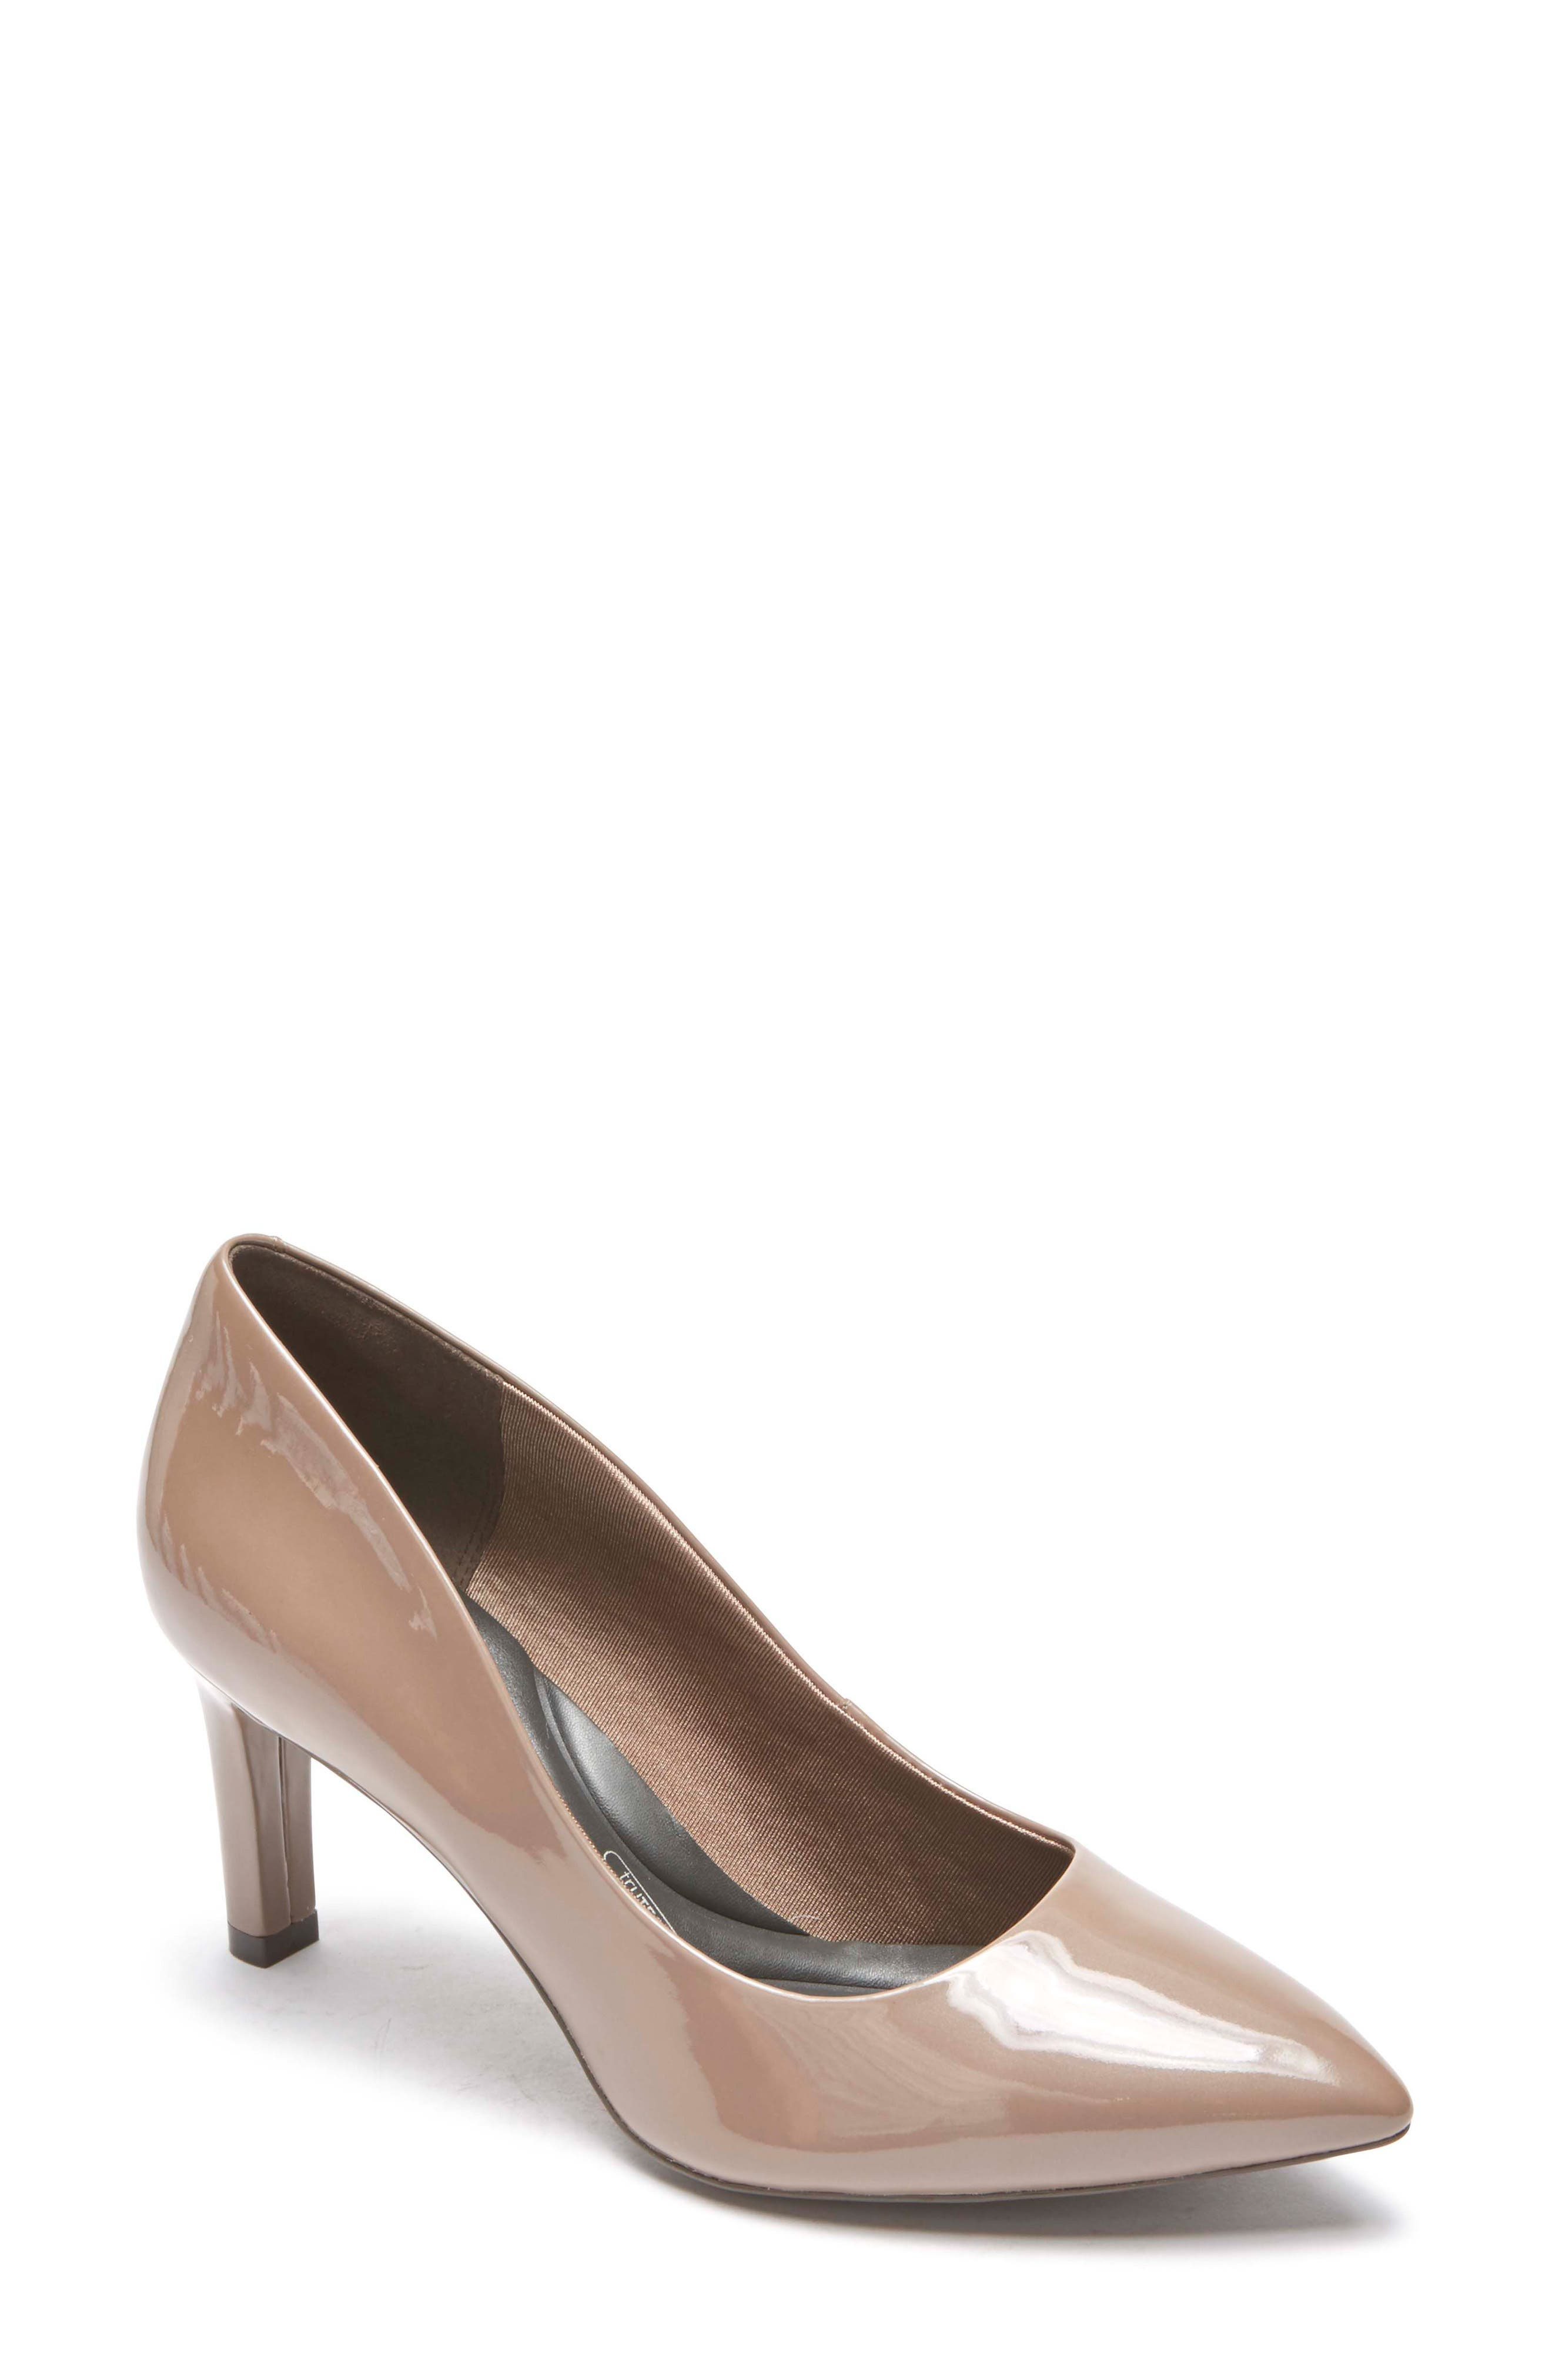 Alternate Image 1 Selected - Rockport Total Motion Luxe Valerie Pump (Women)